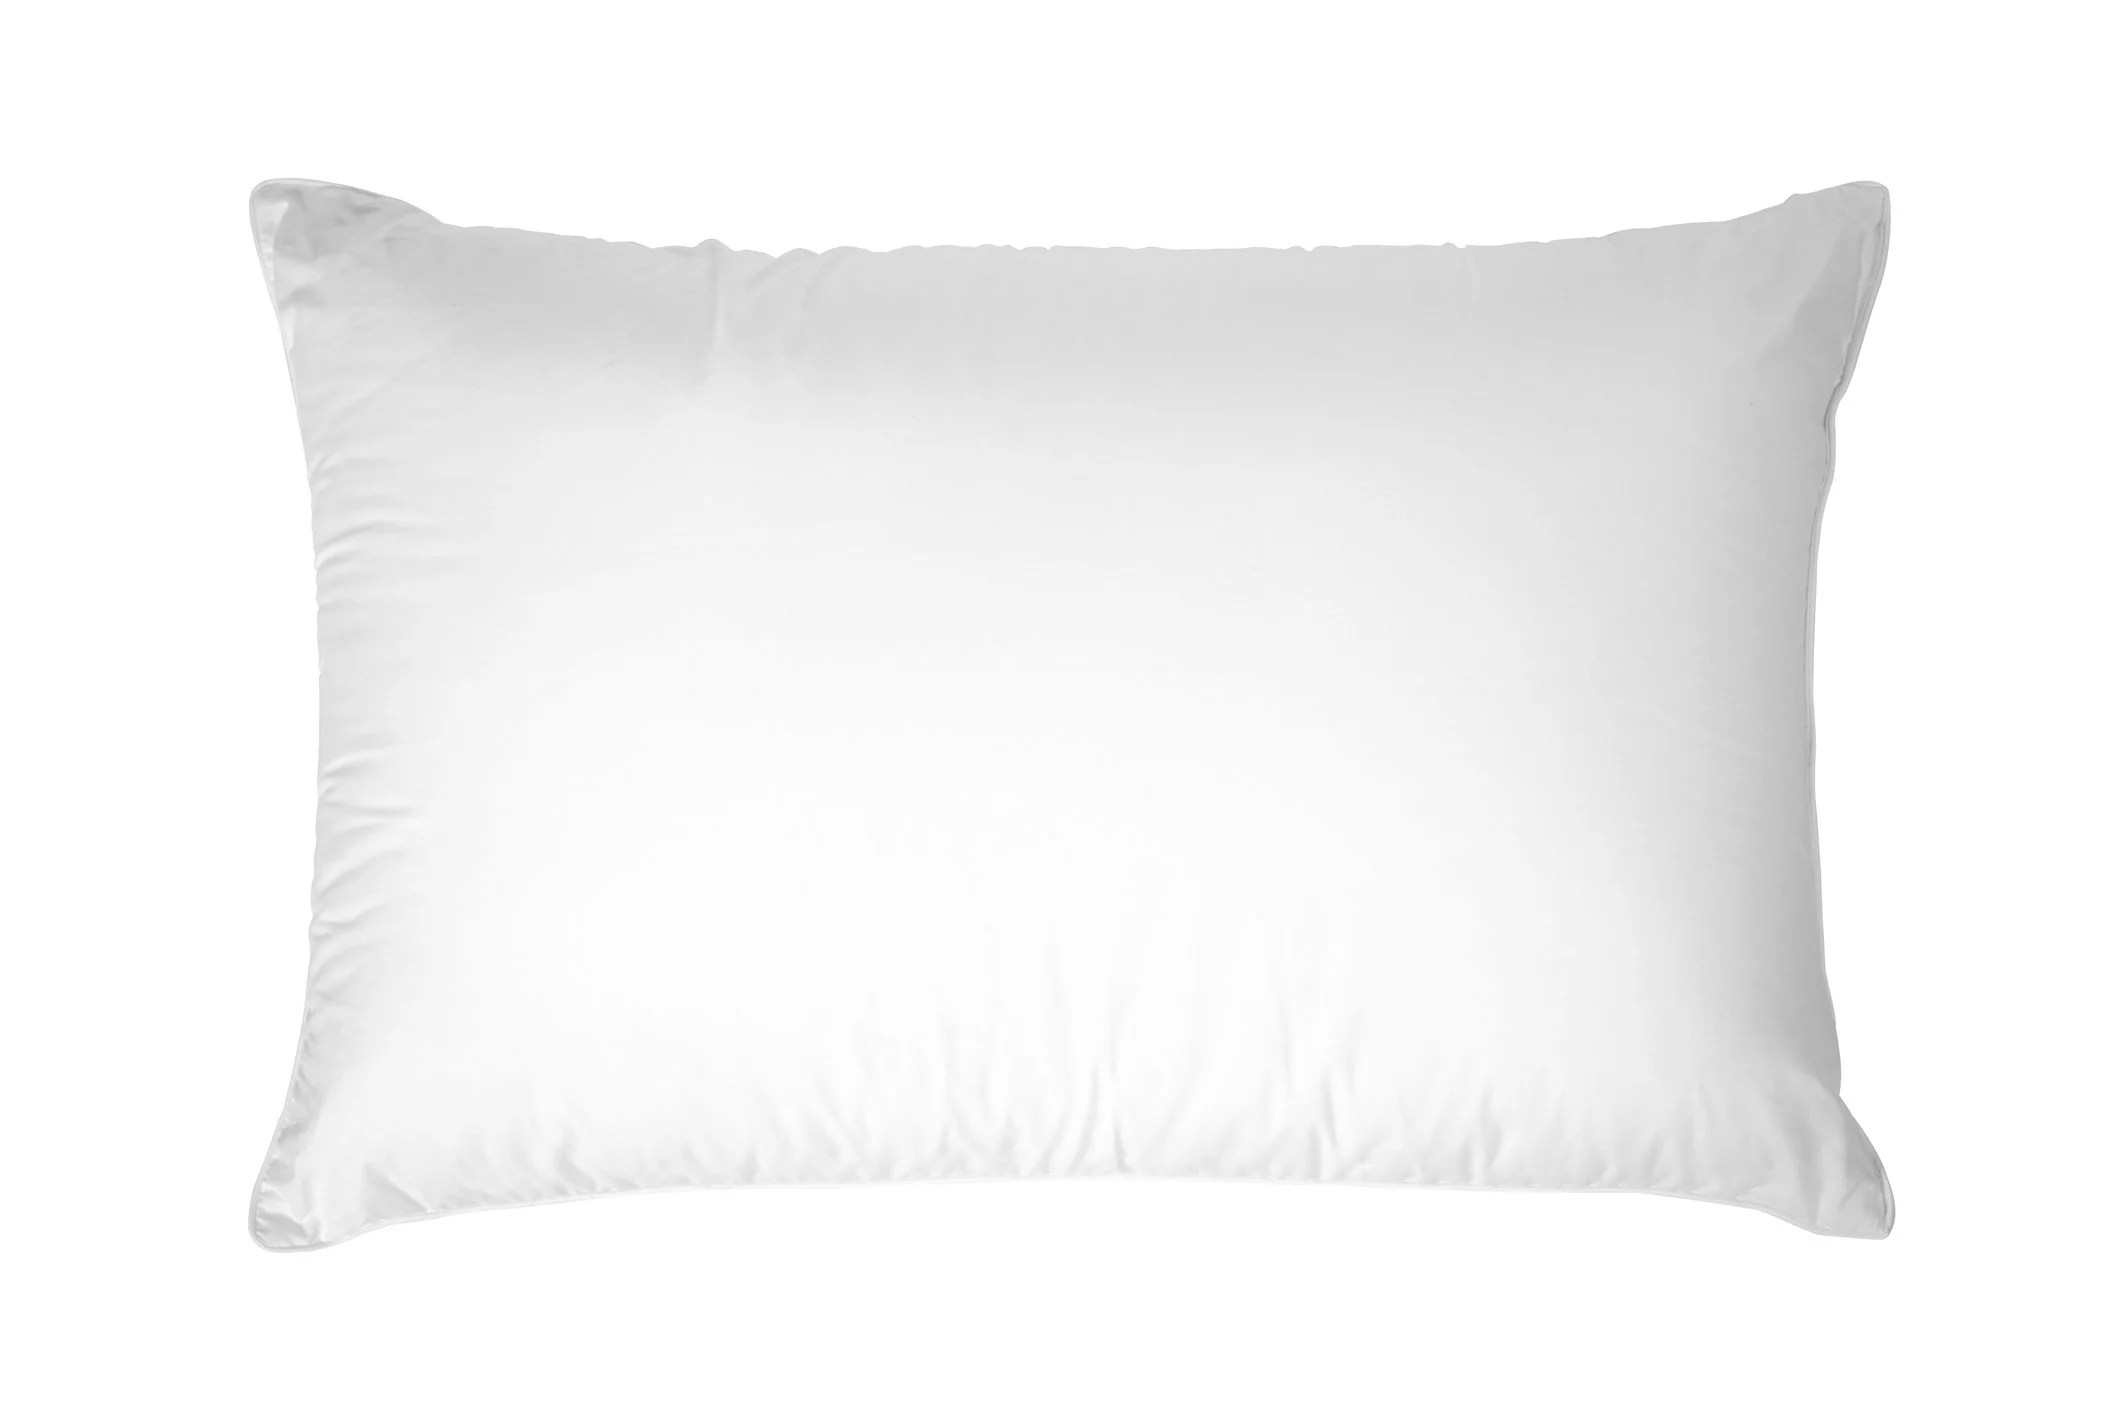 loves to be washed pillow king found in staybridge suites by ihg hotels